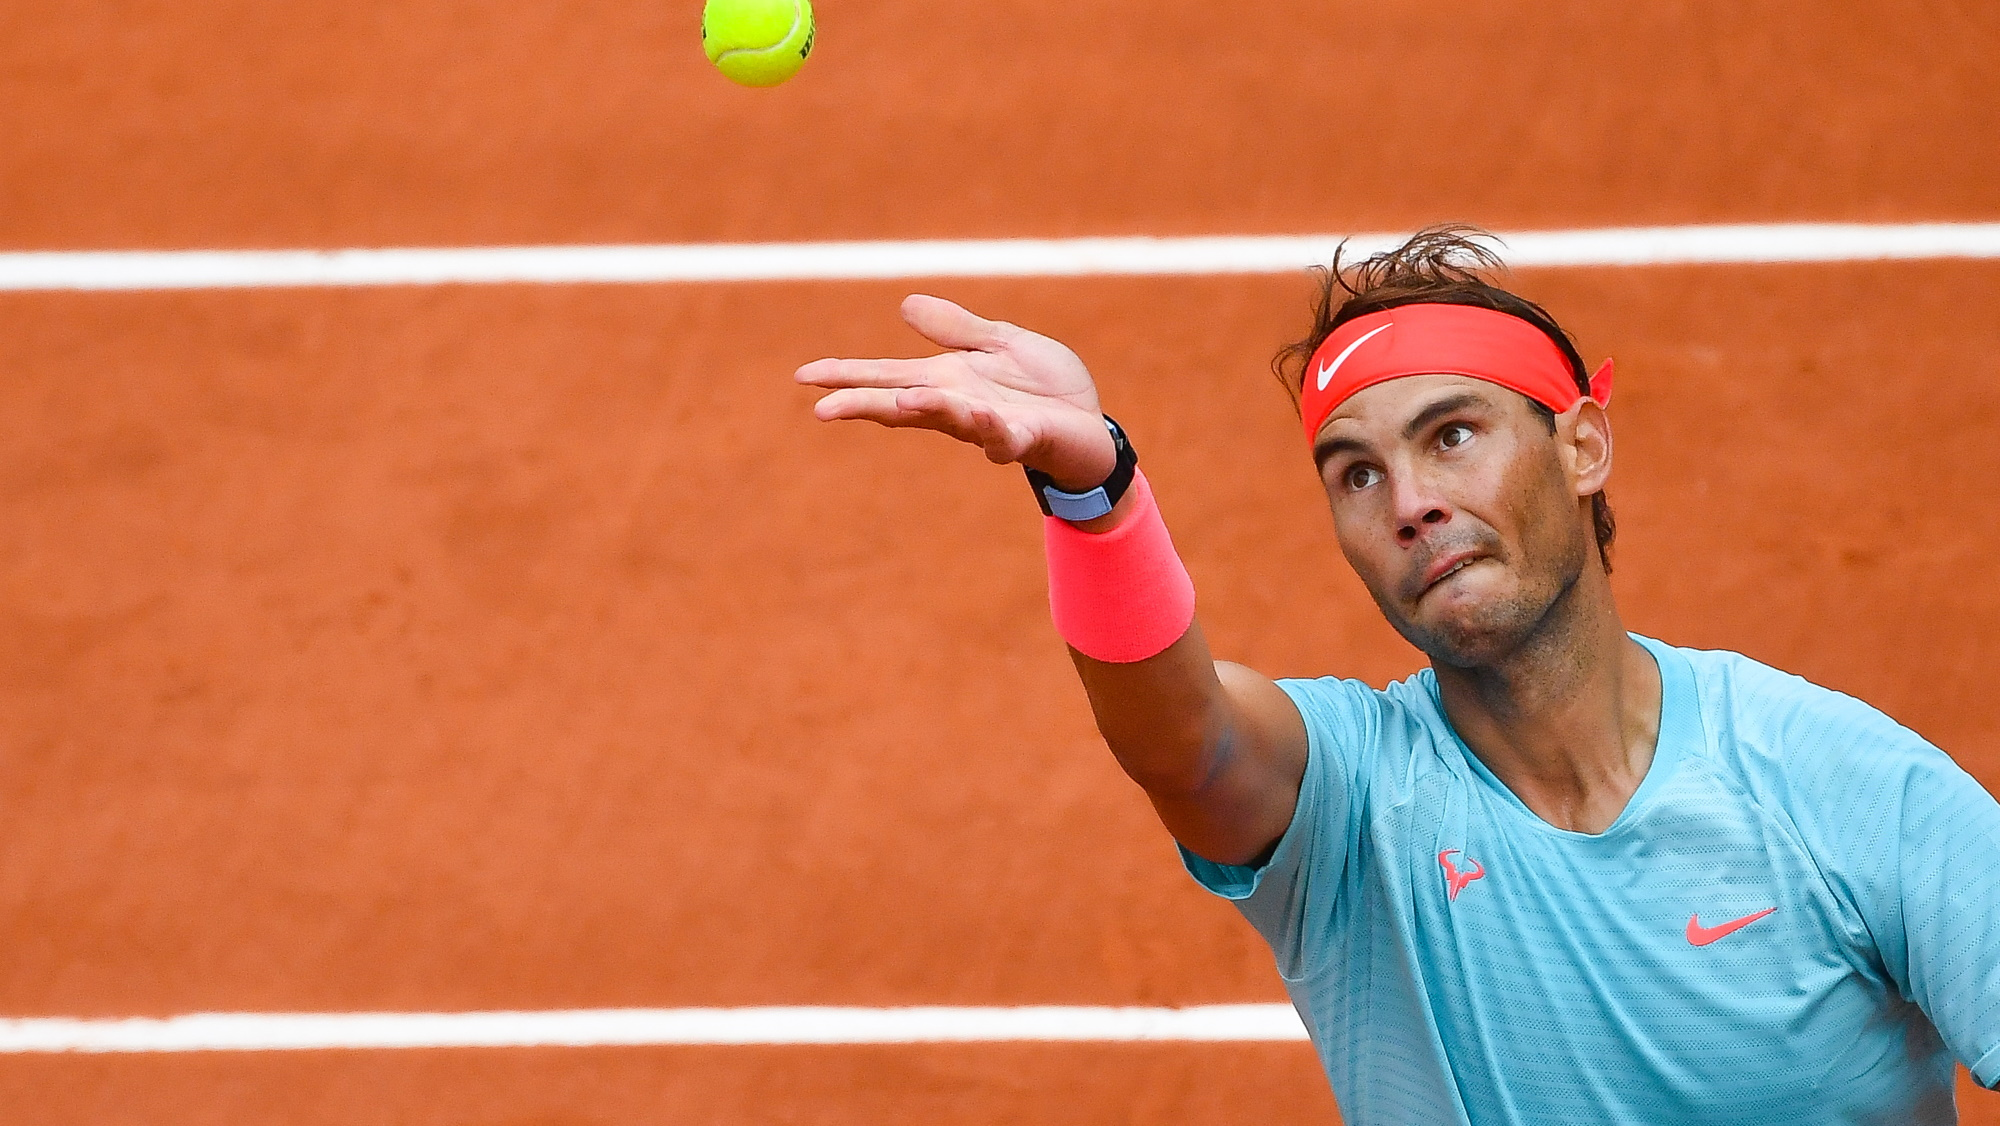 French Open tennis live stream: how to watch Roland Garros 2020 tennis free online from anywhere thumbnail